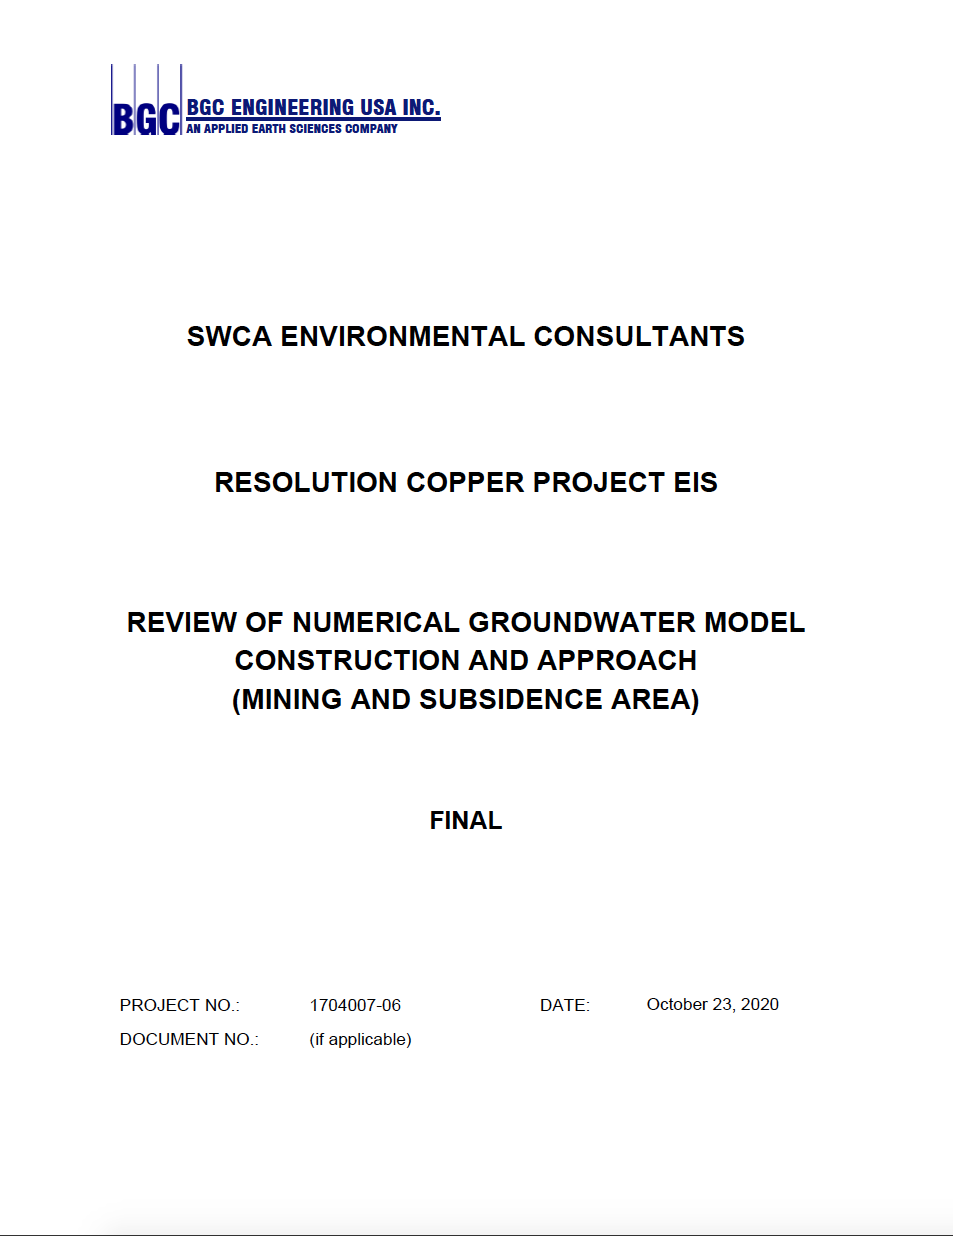 Thumbnail image of document cover: Review of Numerical Groundwater Model Construction and Approach (Mining and Subsidence Area)